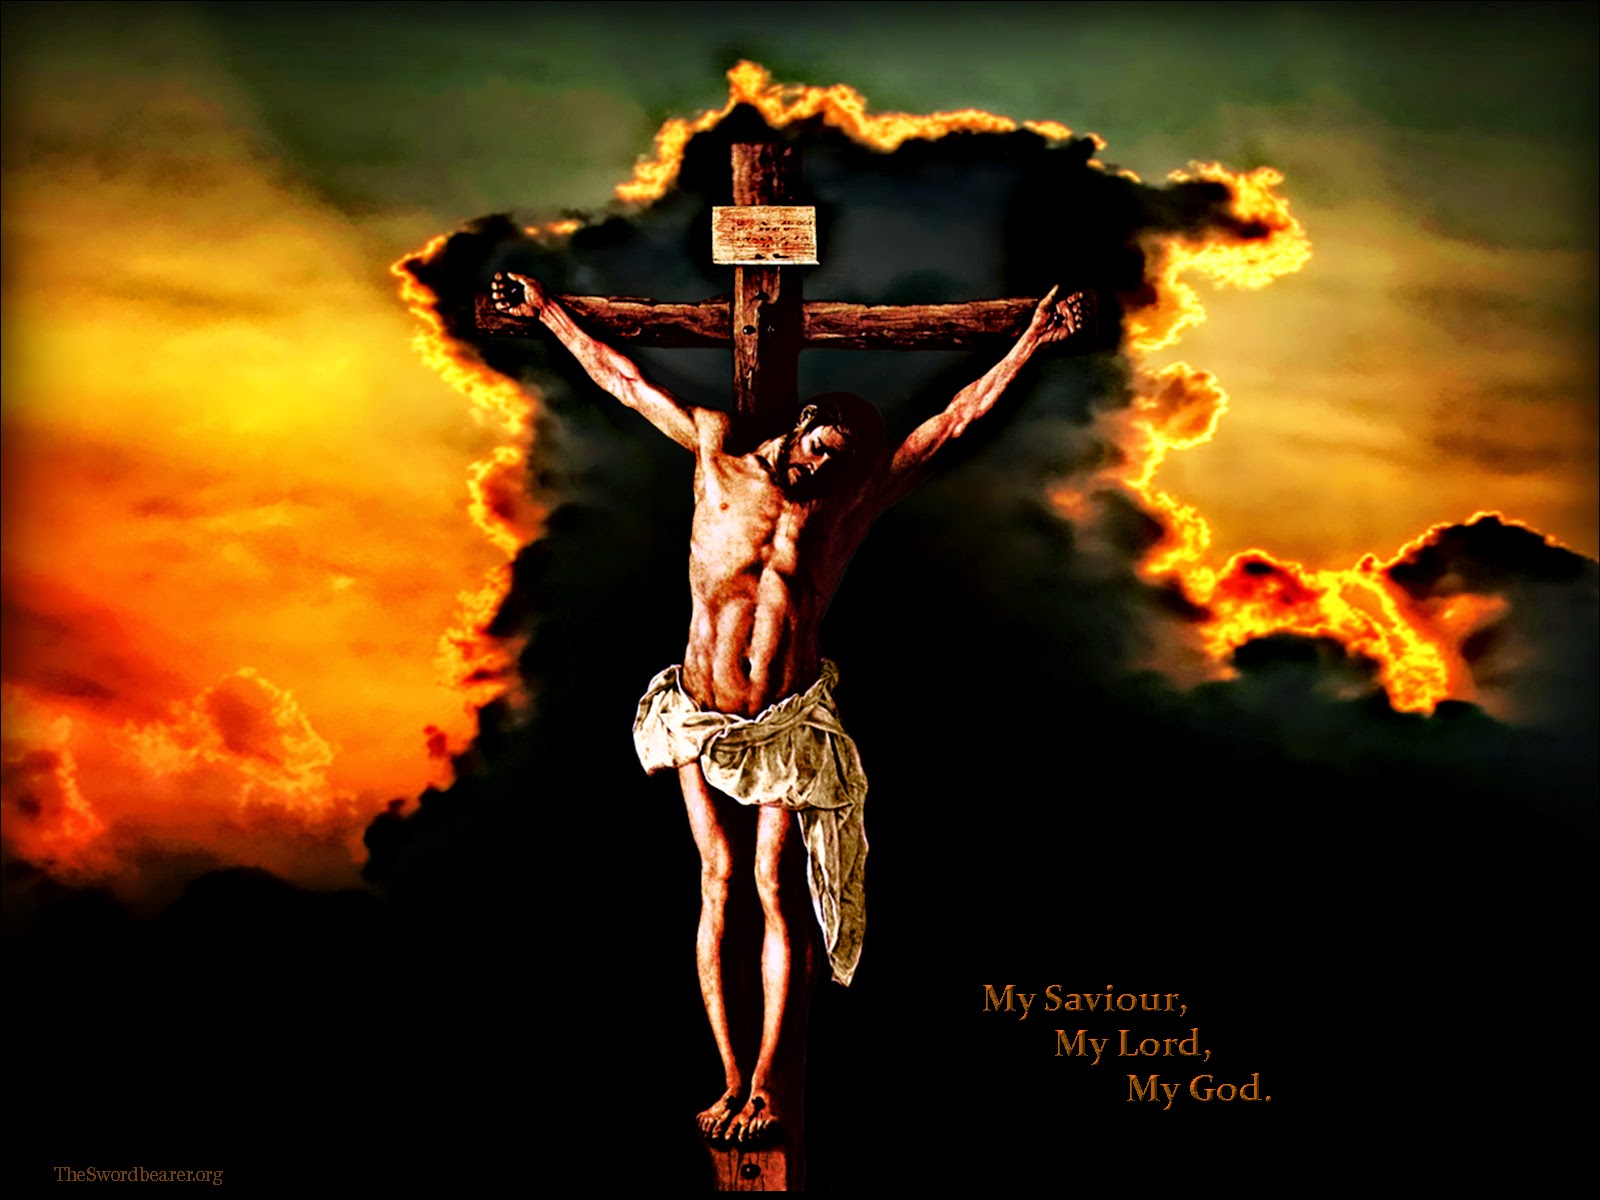 wallpaper jesus christ on the cross hd 874910 hd wallpaper backgrounds download wallpaper jesus christ on the cross